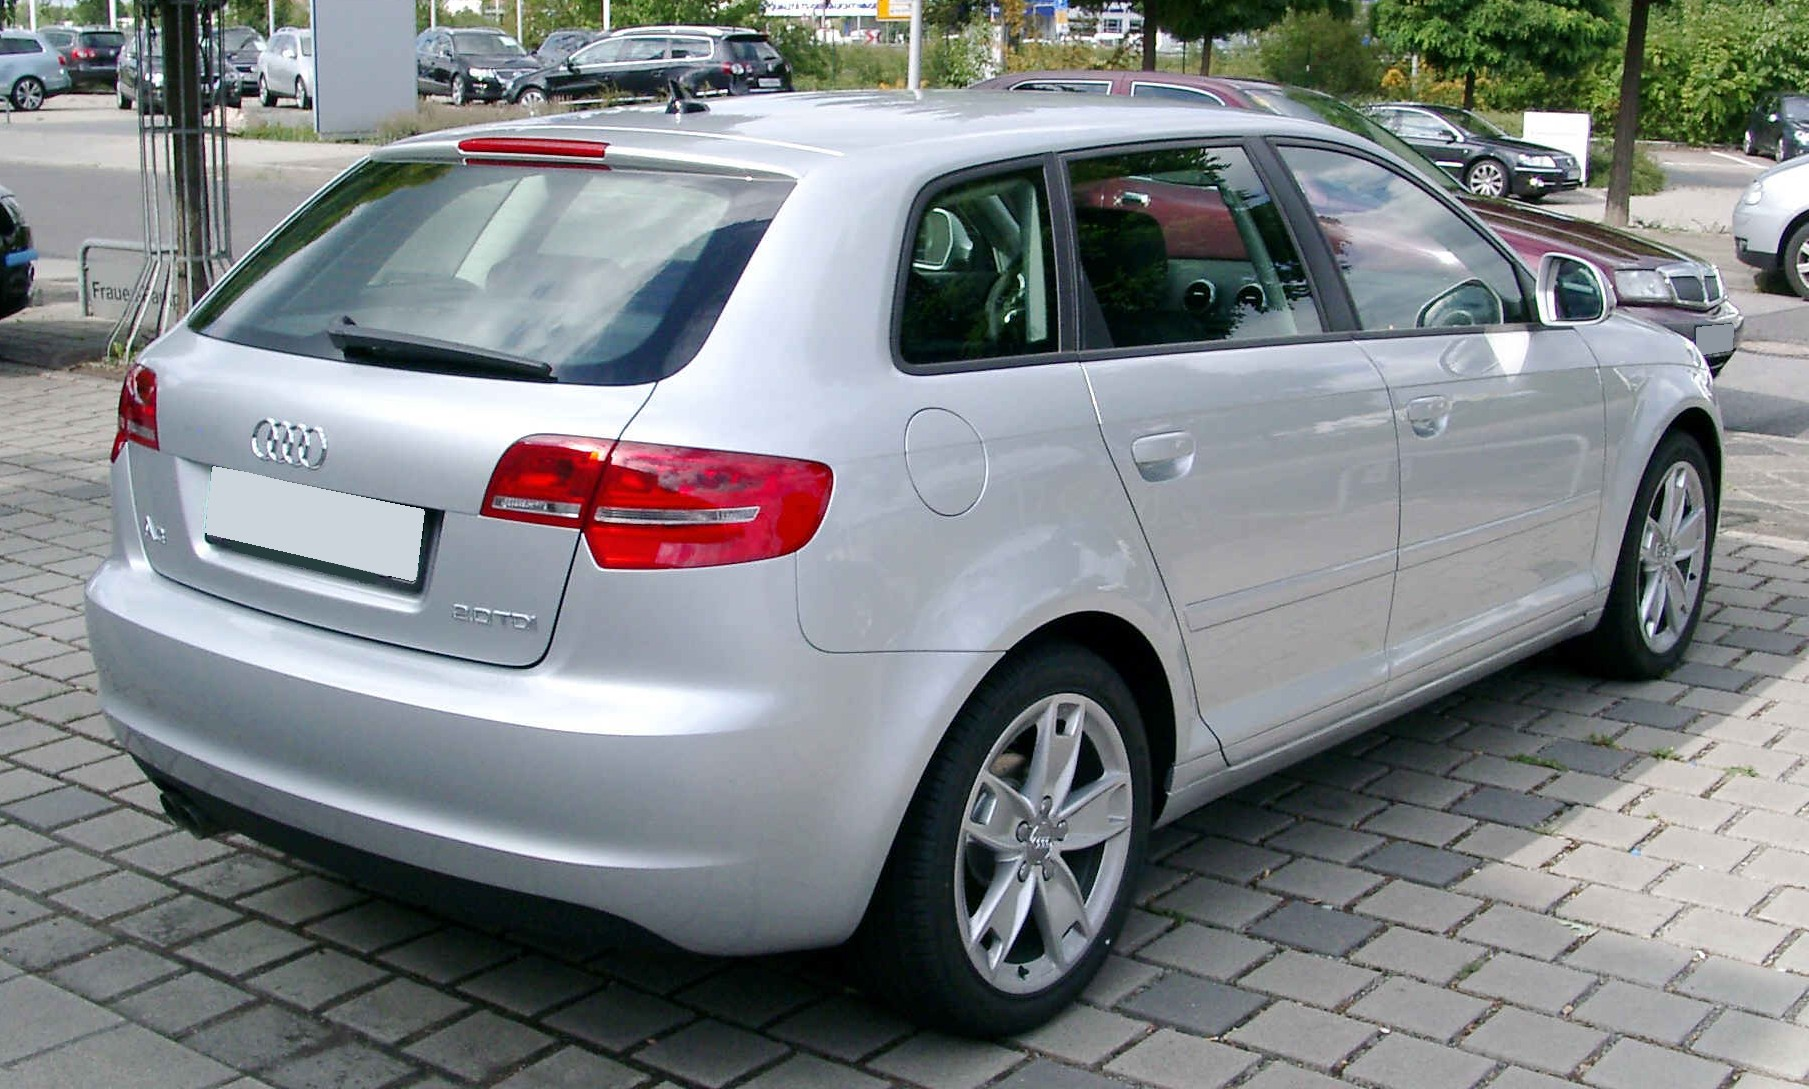 file audi a3 sportback rear wikimedia commons. Black Bedroom Furniture Sets. Home Design Ideas